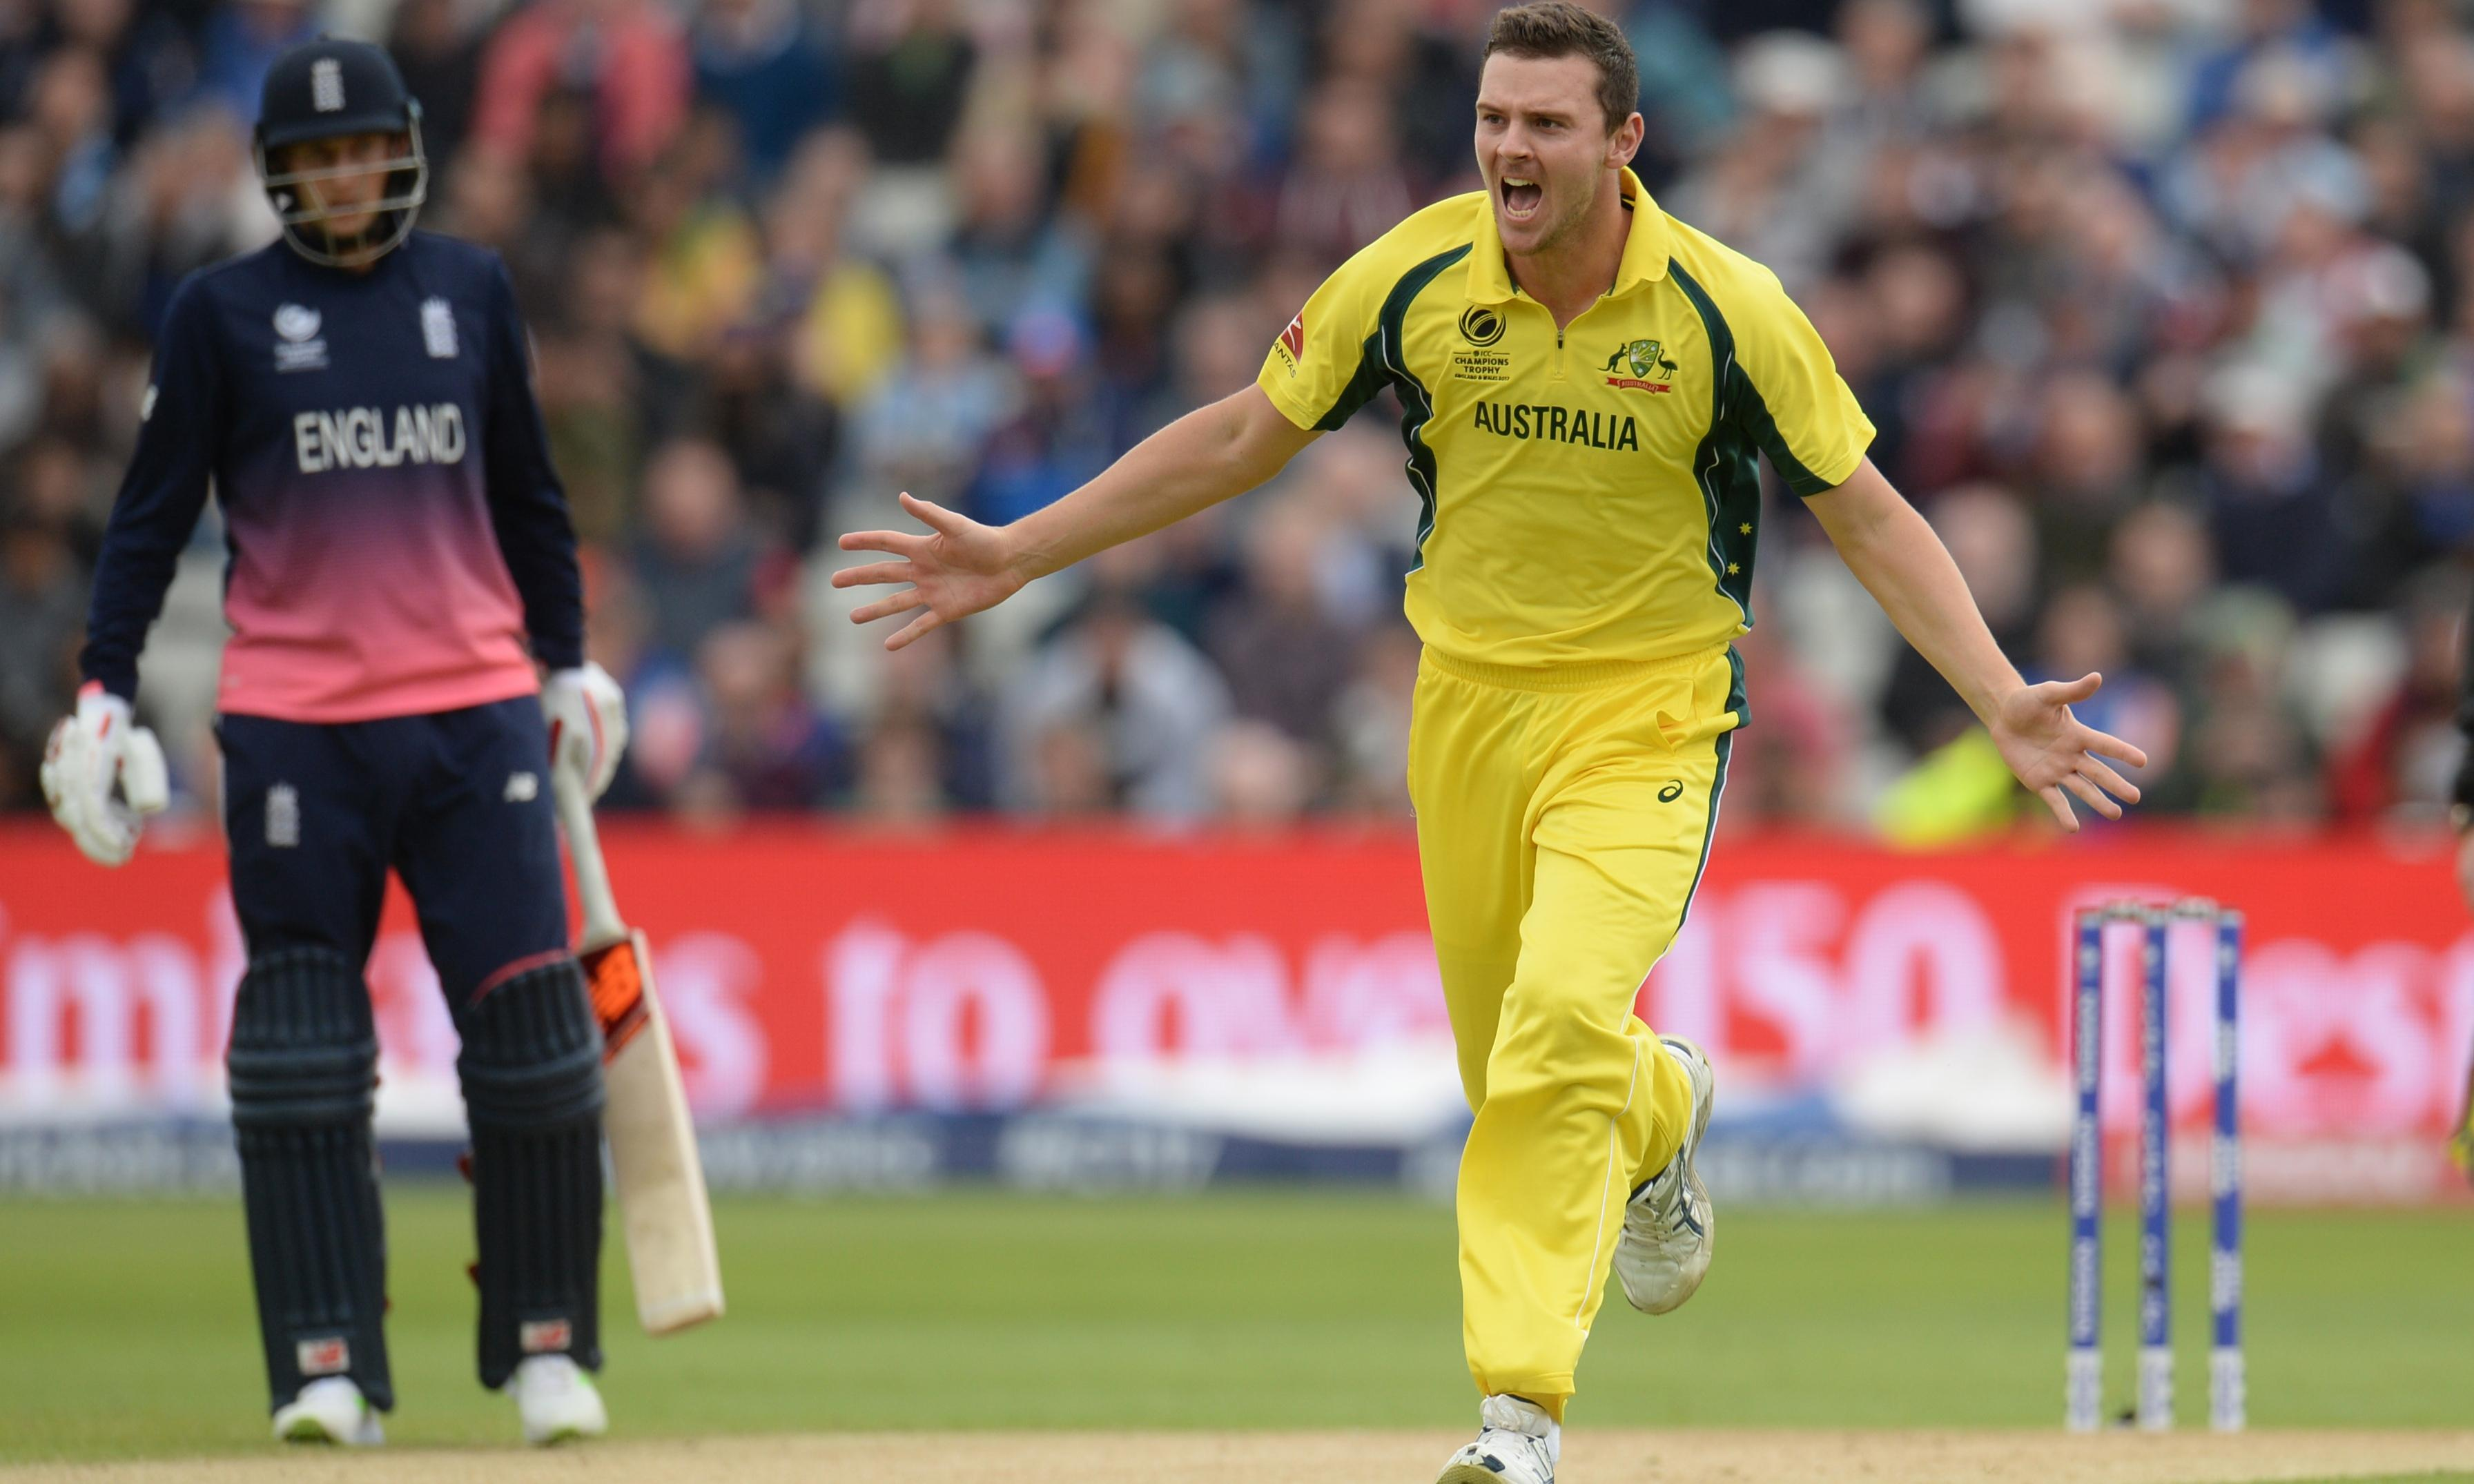 Josh Hazlewood misses World Cup selection as Warner and Smith return